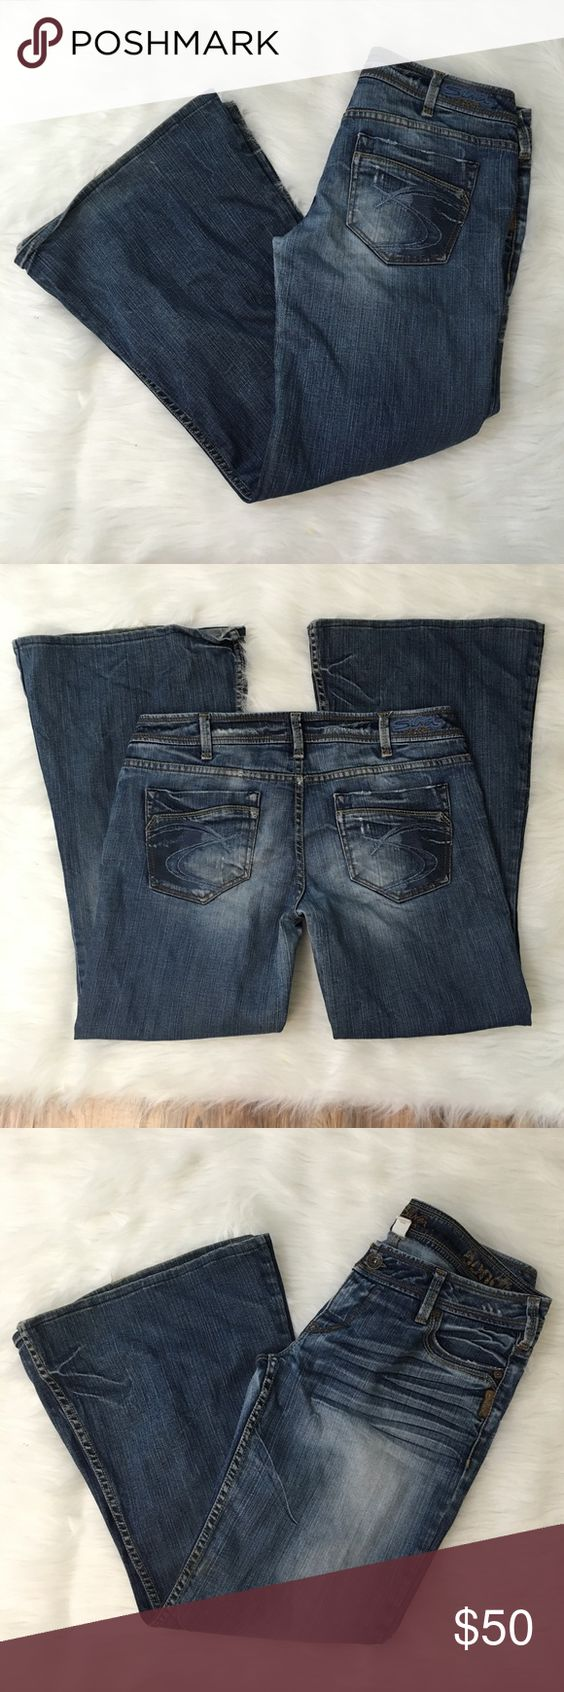 Bondi Silver Jeans Good used condition silver jeans women&39s size